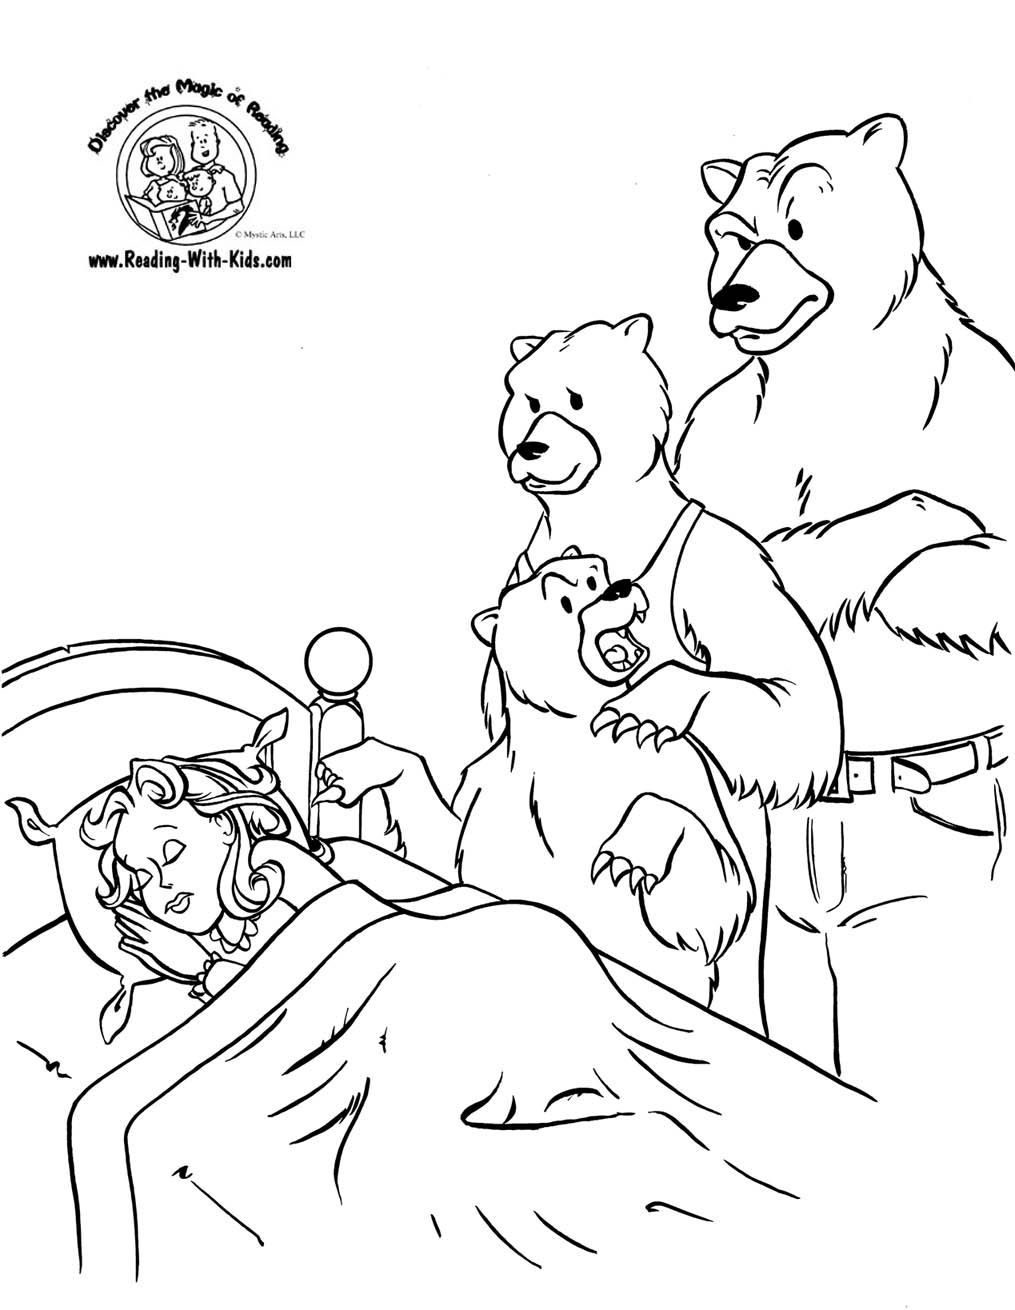 Goldilocks And The Three Bears Coloring Sheet Fairytale